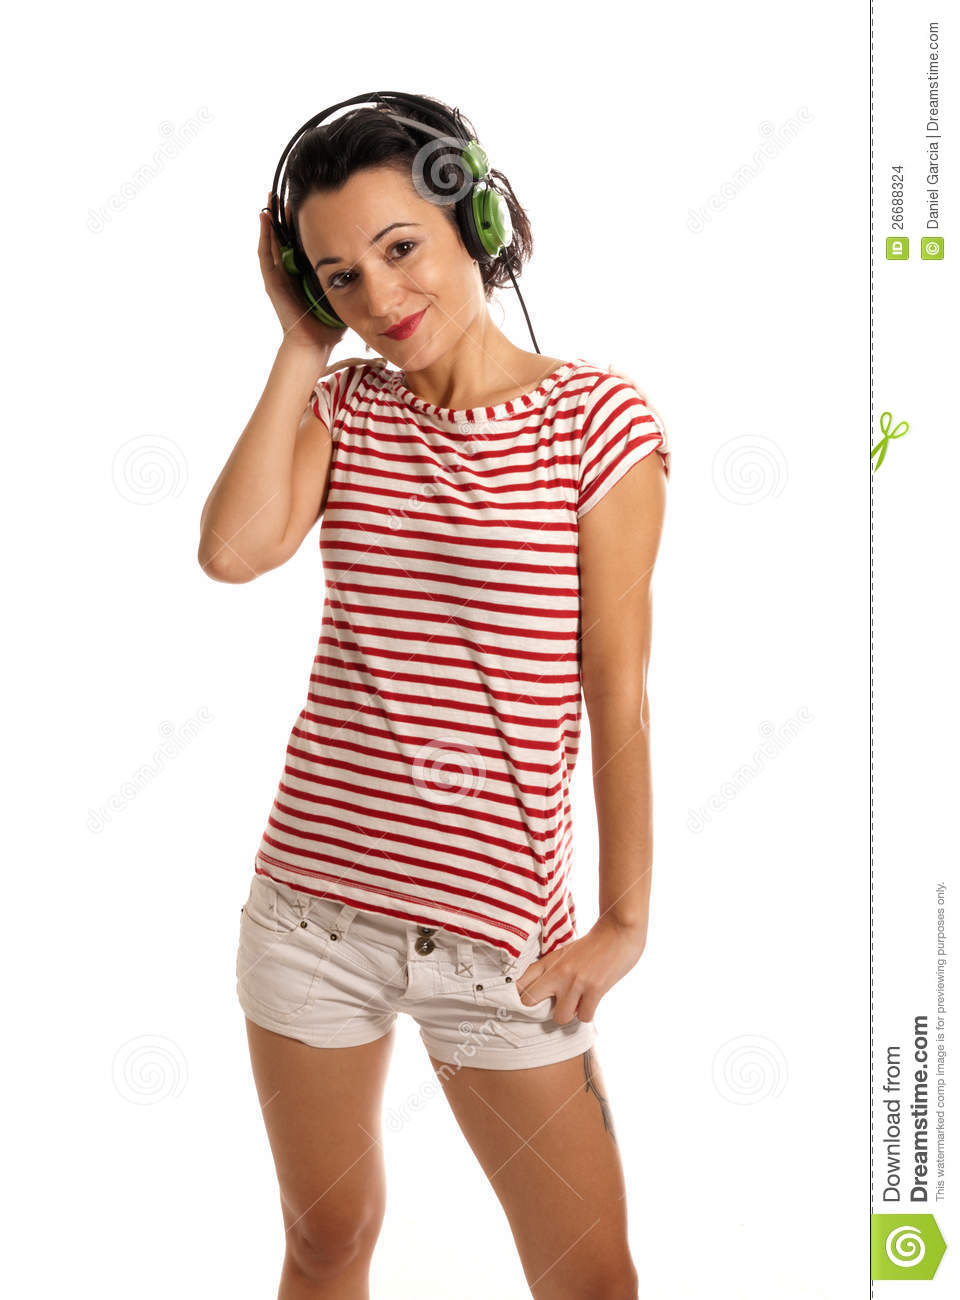 Young woman listening music with headphones standing on white background